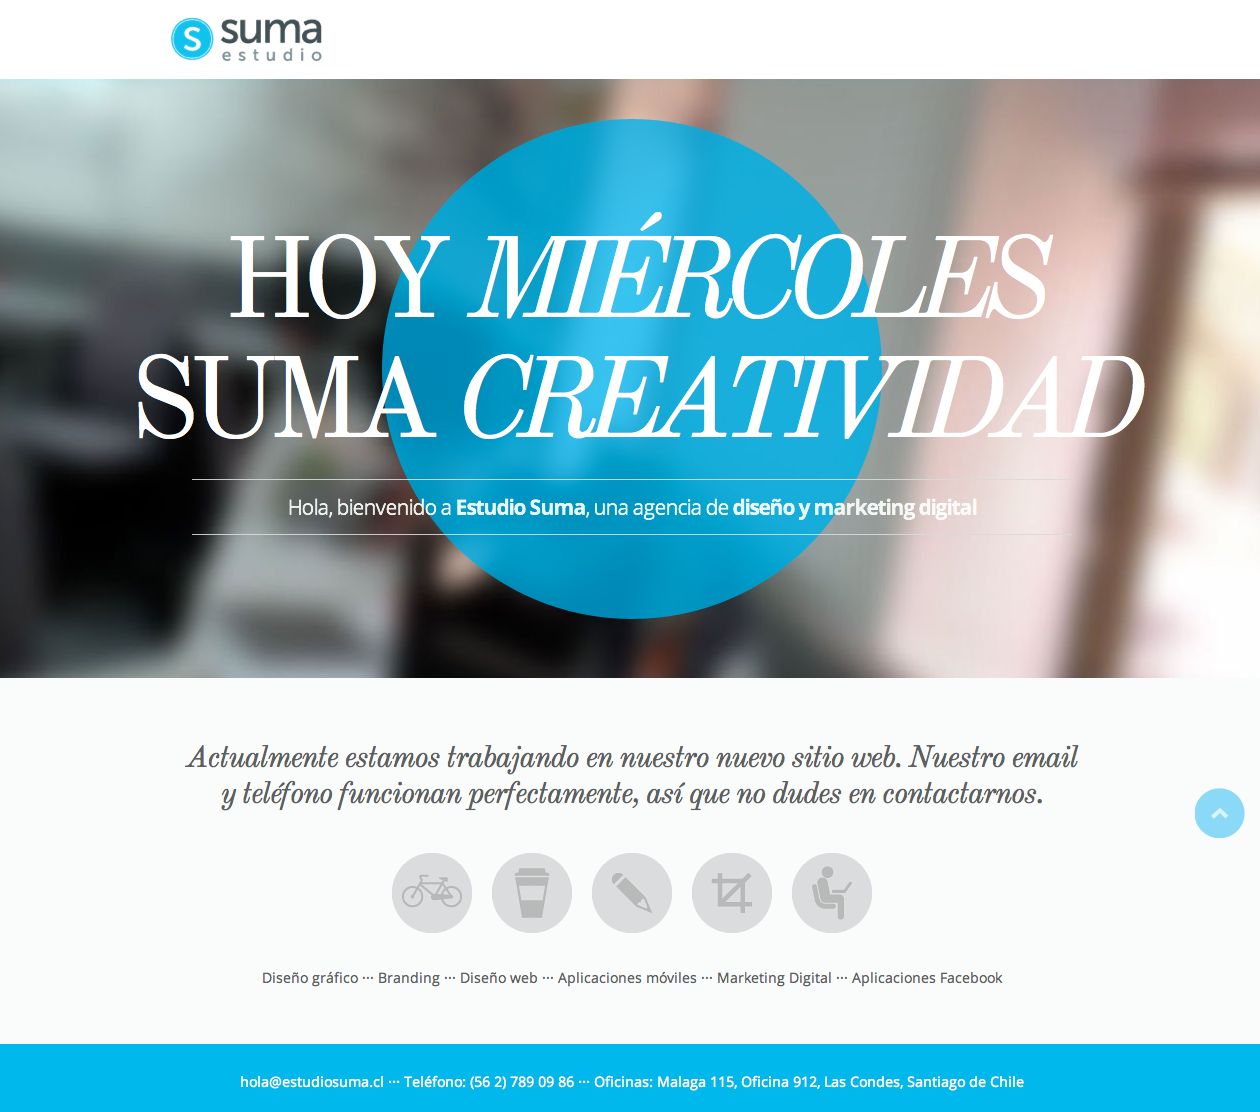 Suma Website Screenshot